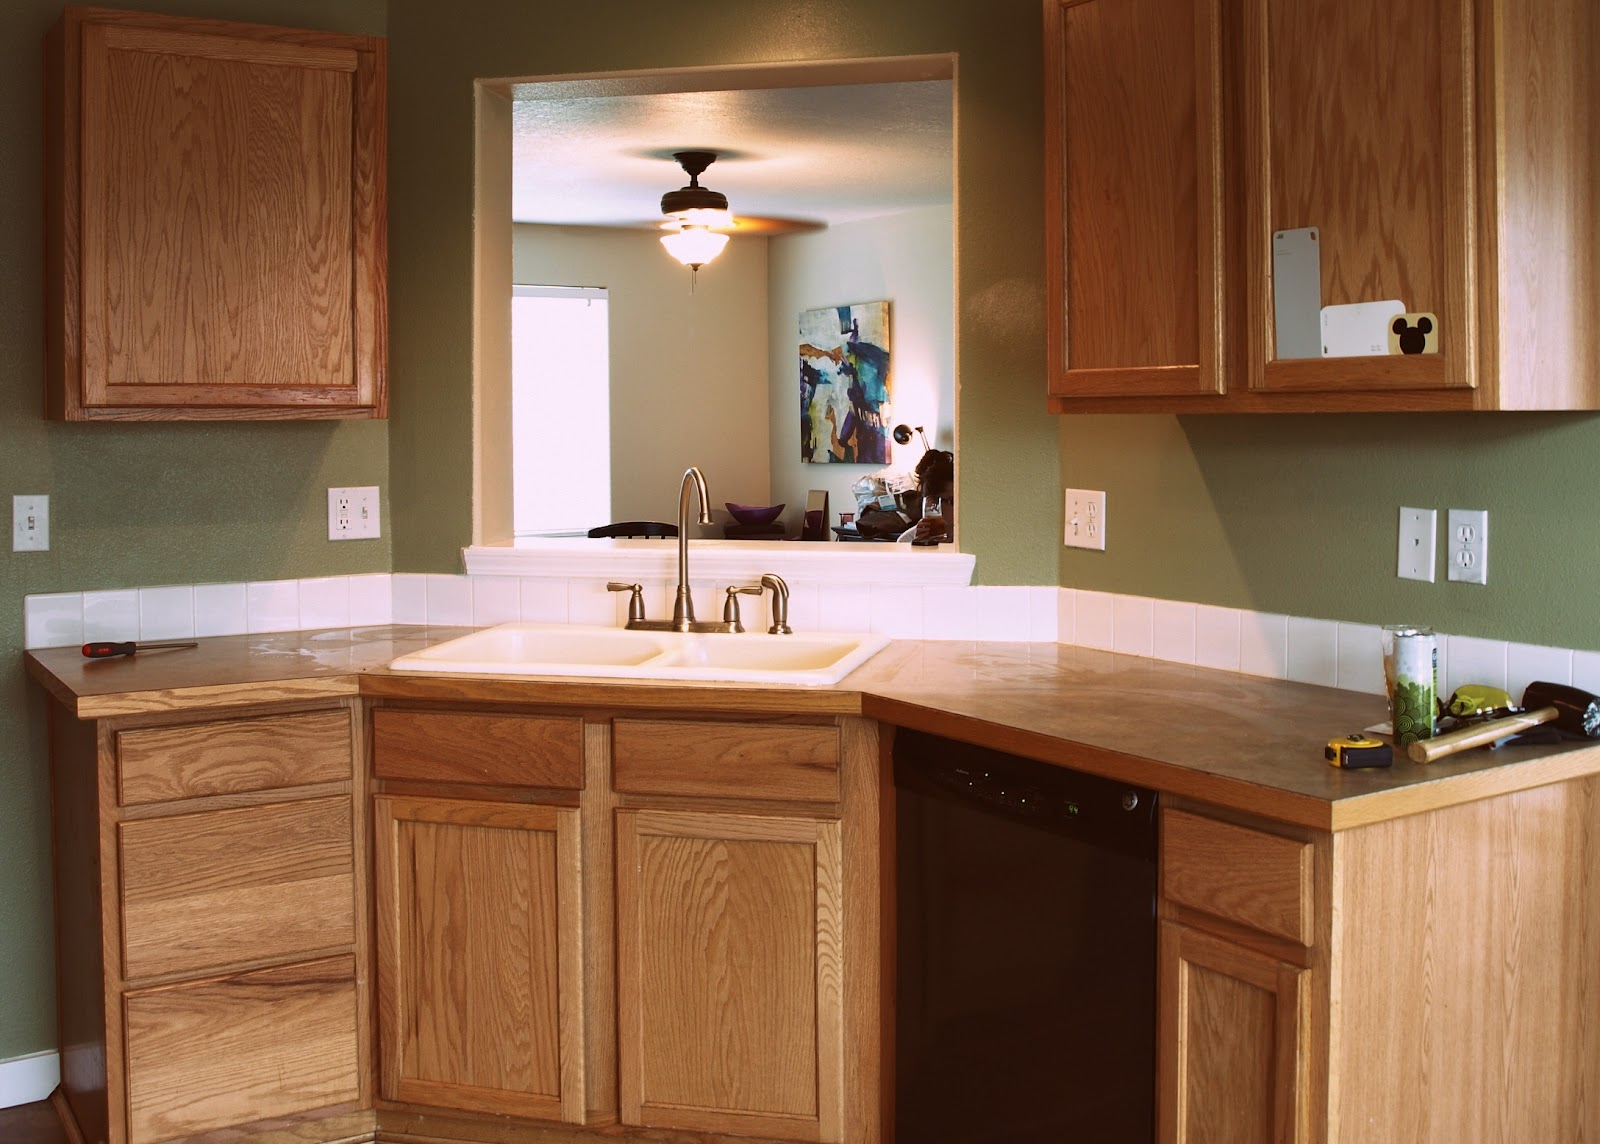 painted granite countertops tutorial cheap kitchen countertops Painted Granite Countertops Tutorial